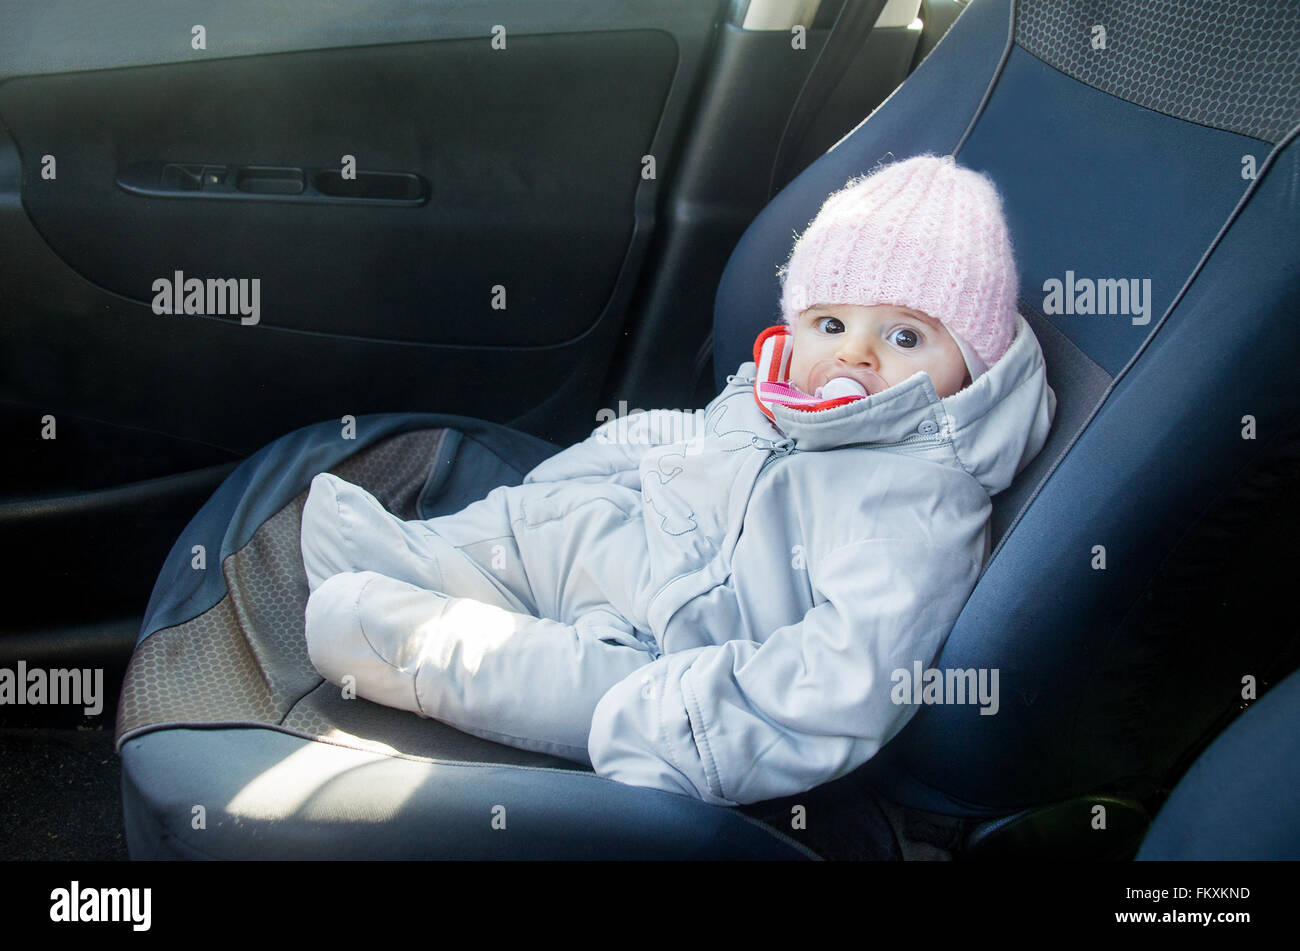 Onesie Stock Photos Images Alamy Sugar Baby Infant Seat Blue Newborn In Car Sitting On Front Dressed For Winter Image